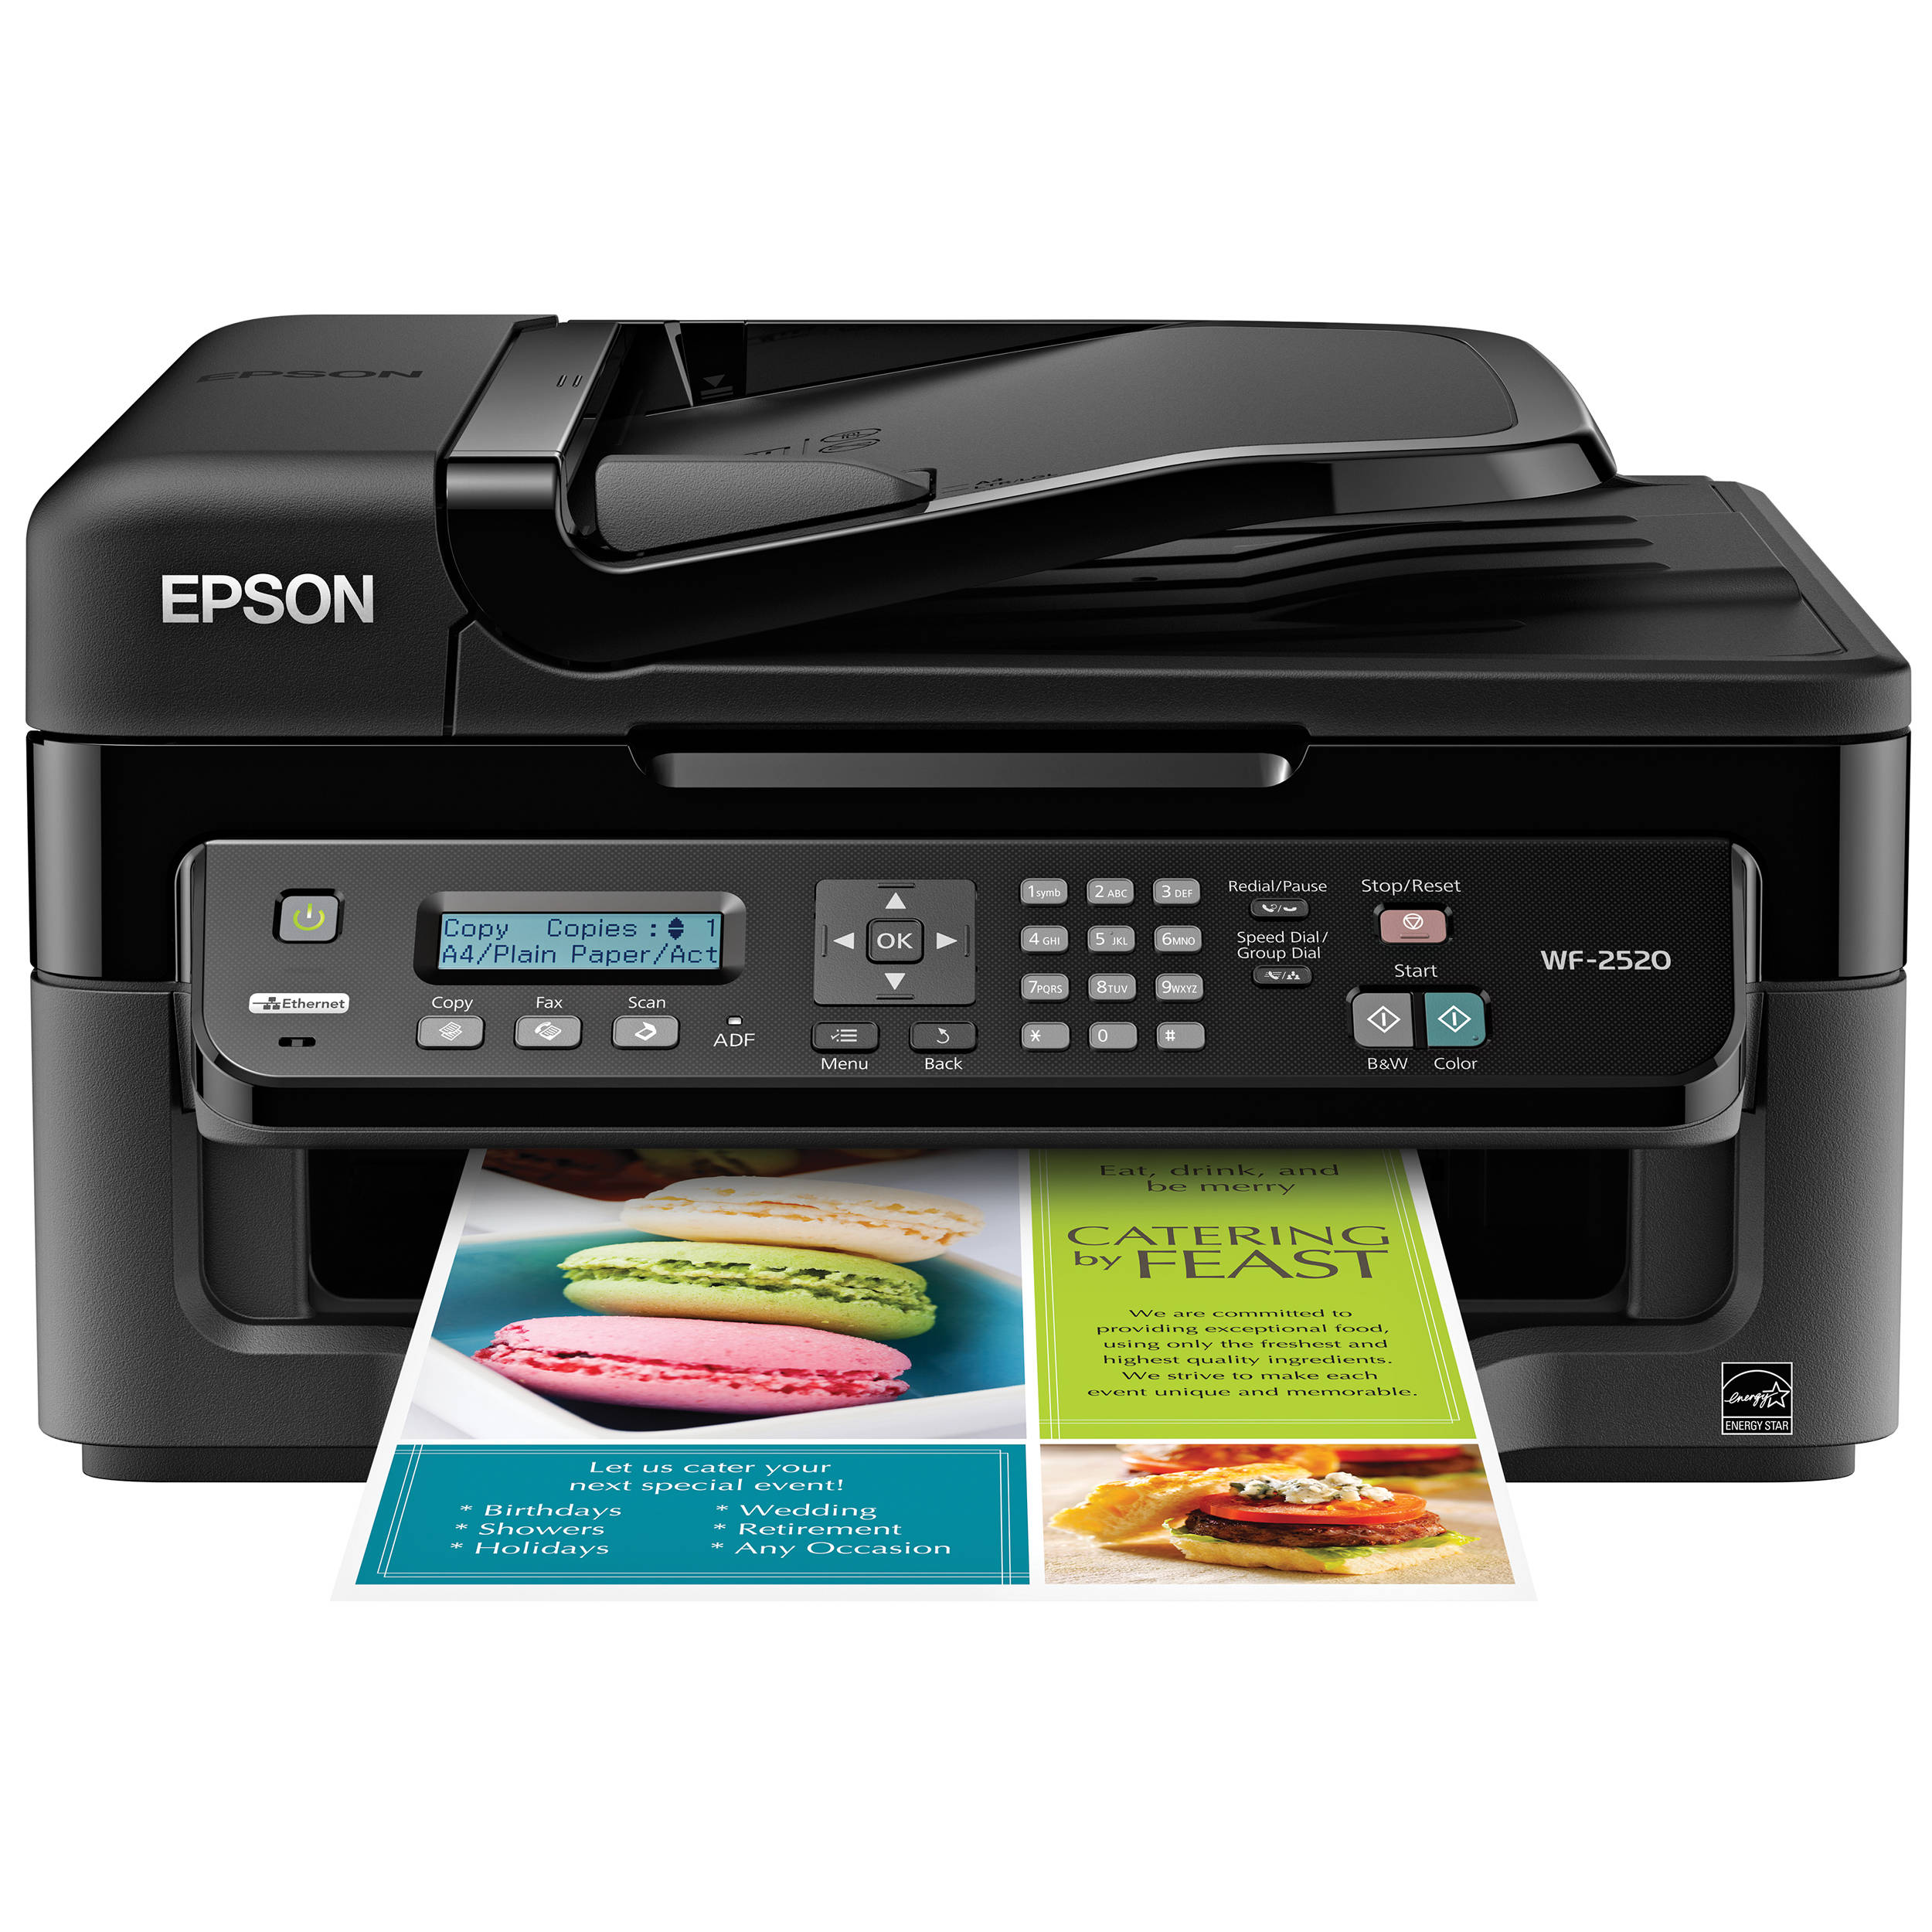 EPSON WF 2520 SCANNER DRIVERS FOR PC